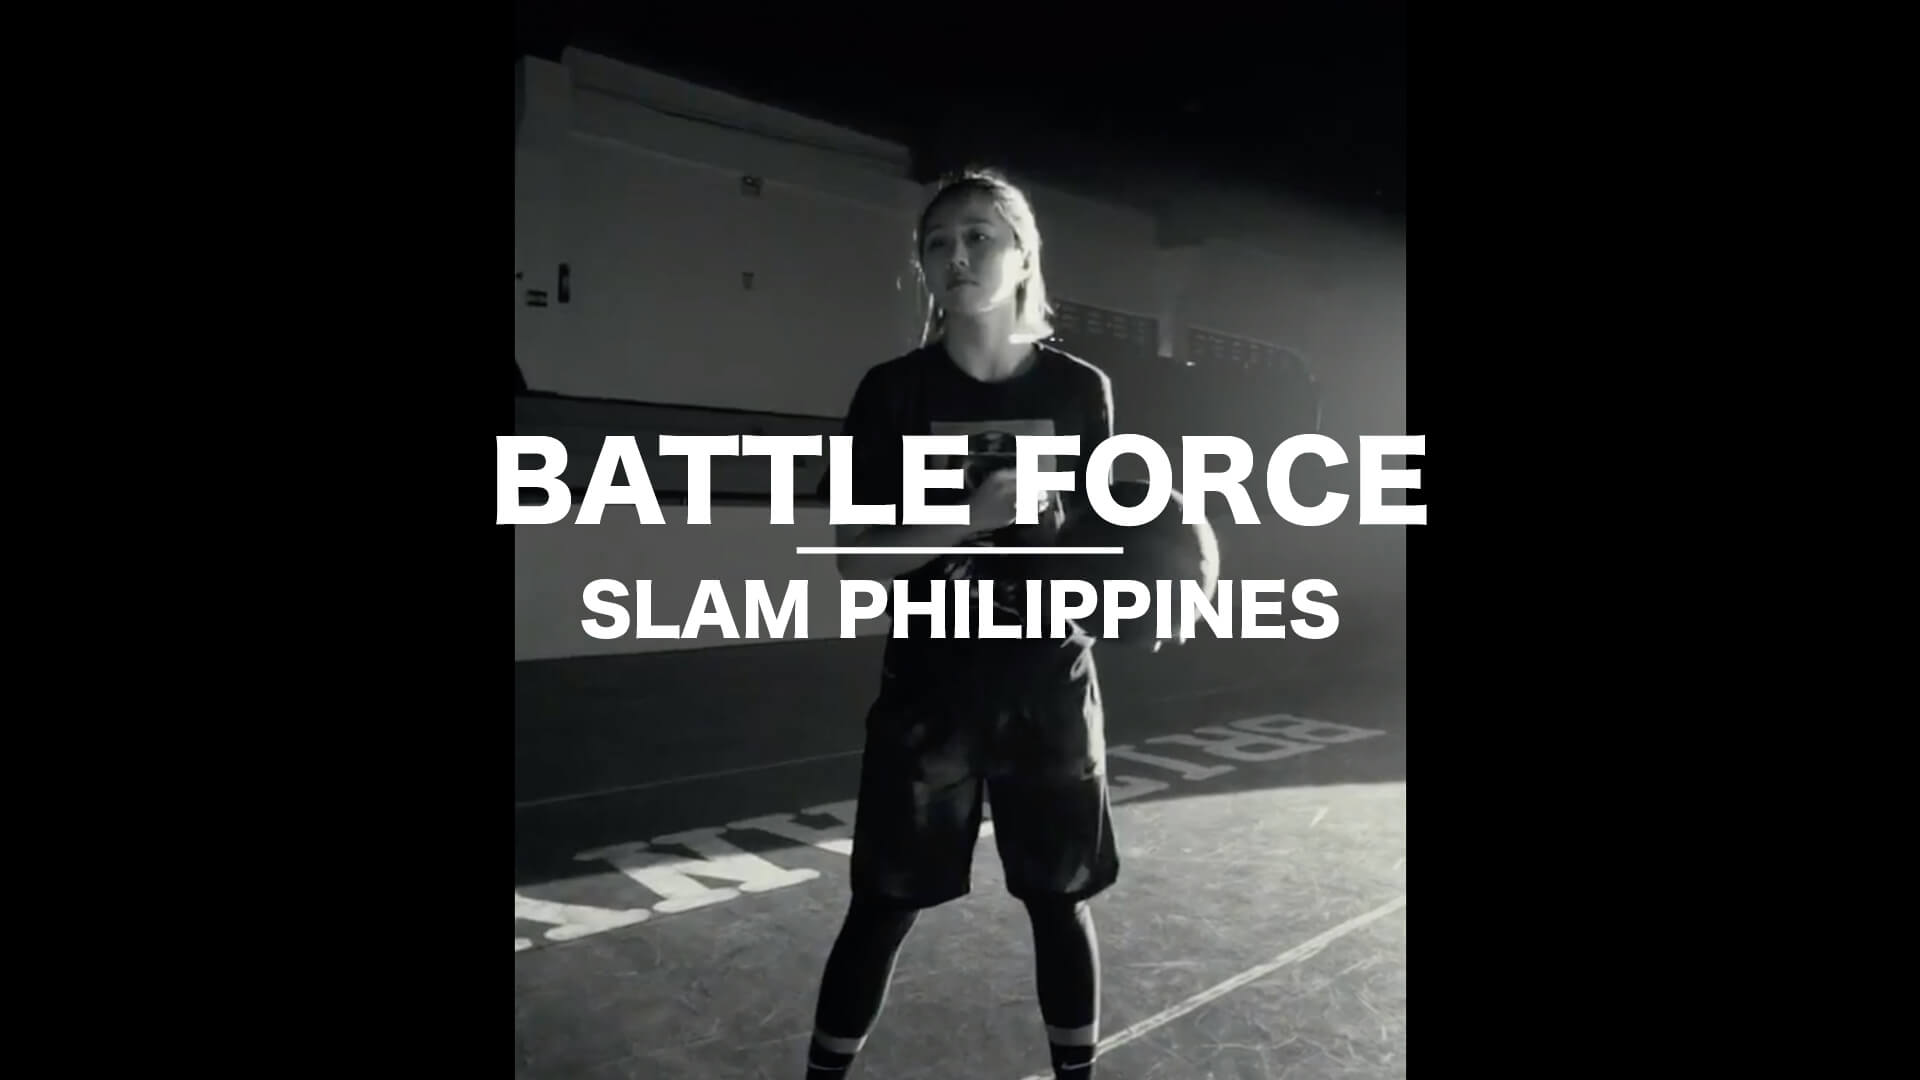 Project Battleforce Katrina Guytingco Slam Philippines